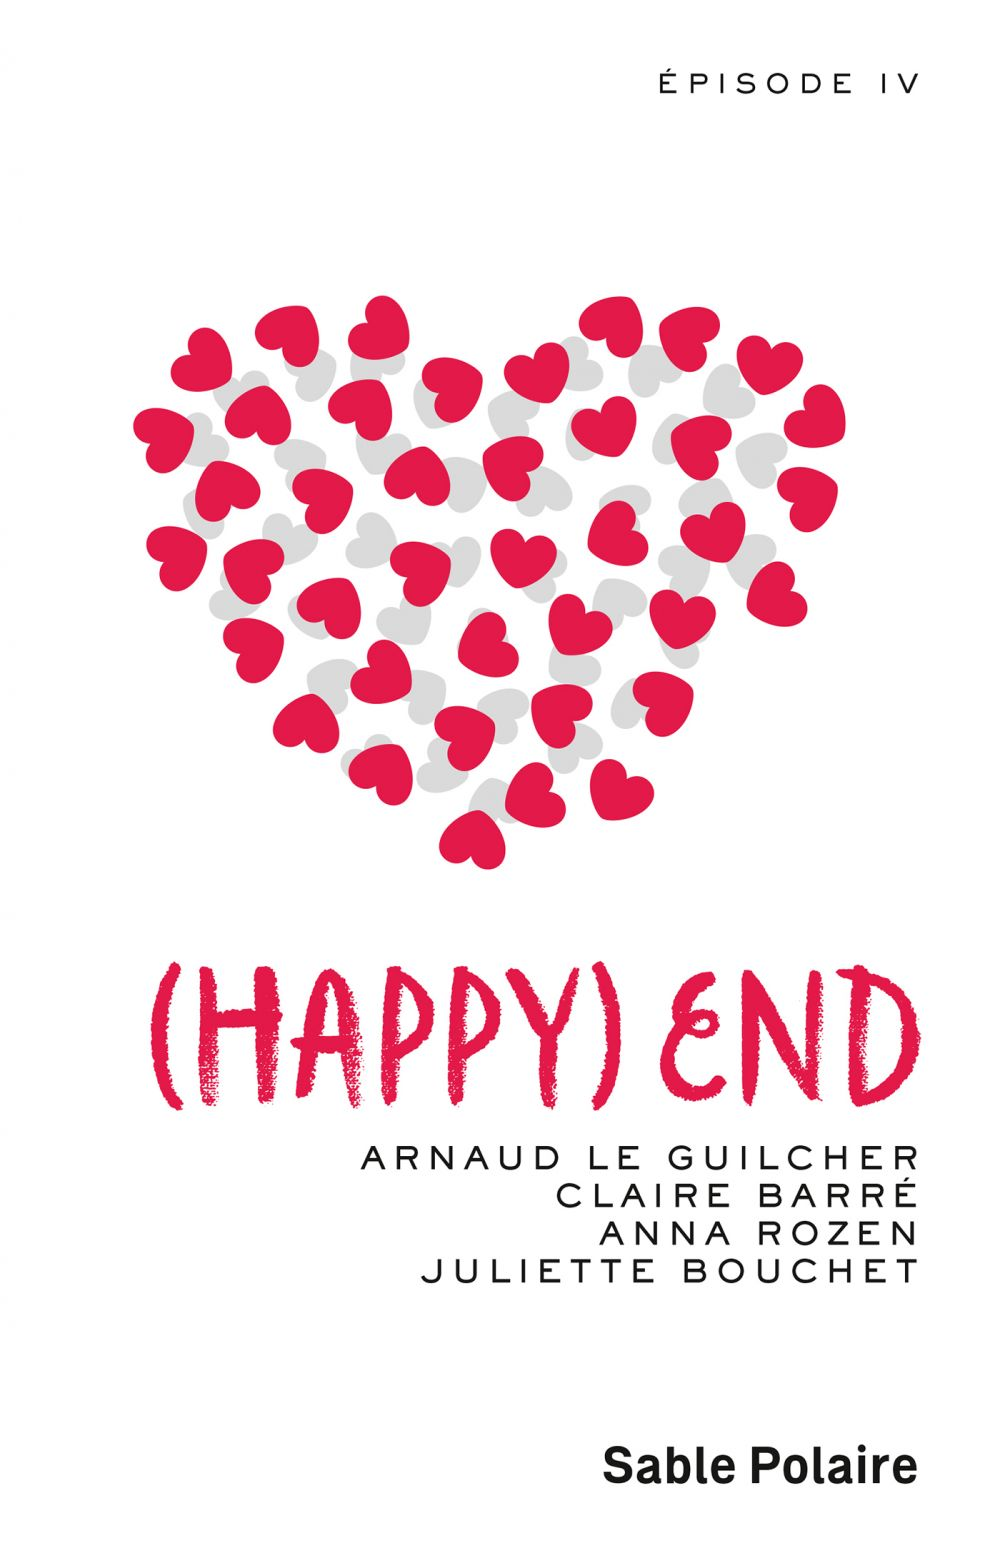 Chants d'amour (Épisode 4) - (Happy) end